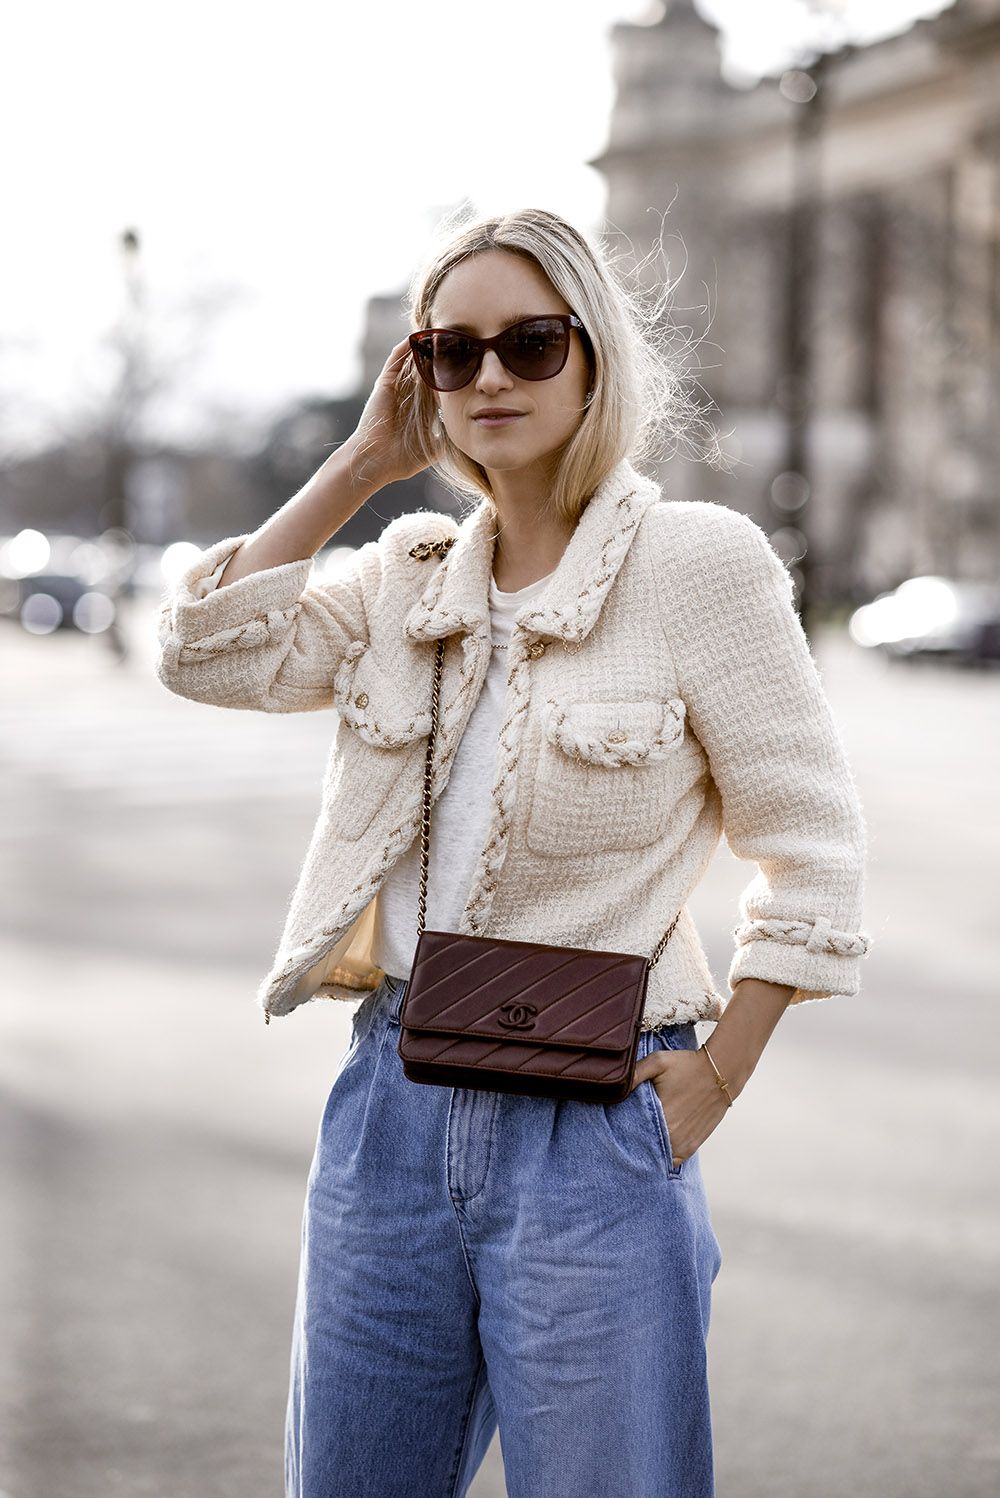 Chanel Wallet On A Chain Chanel Street Style Fashion